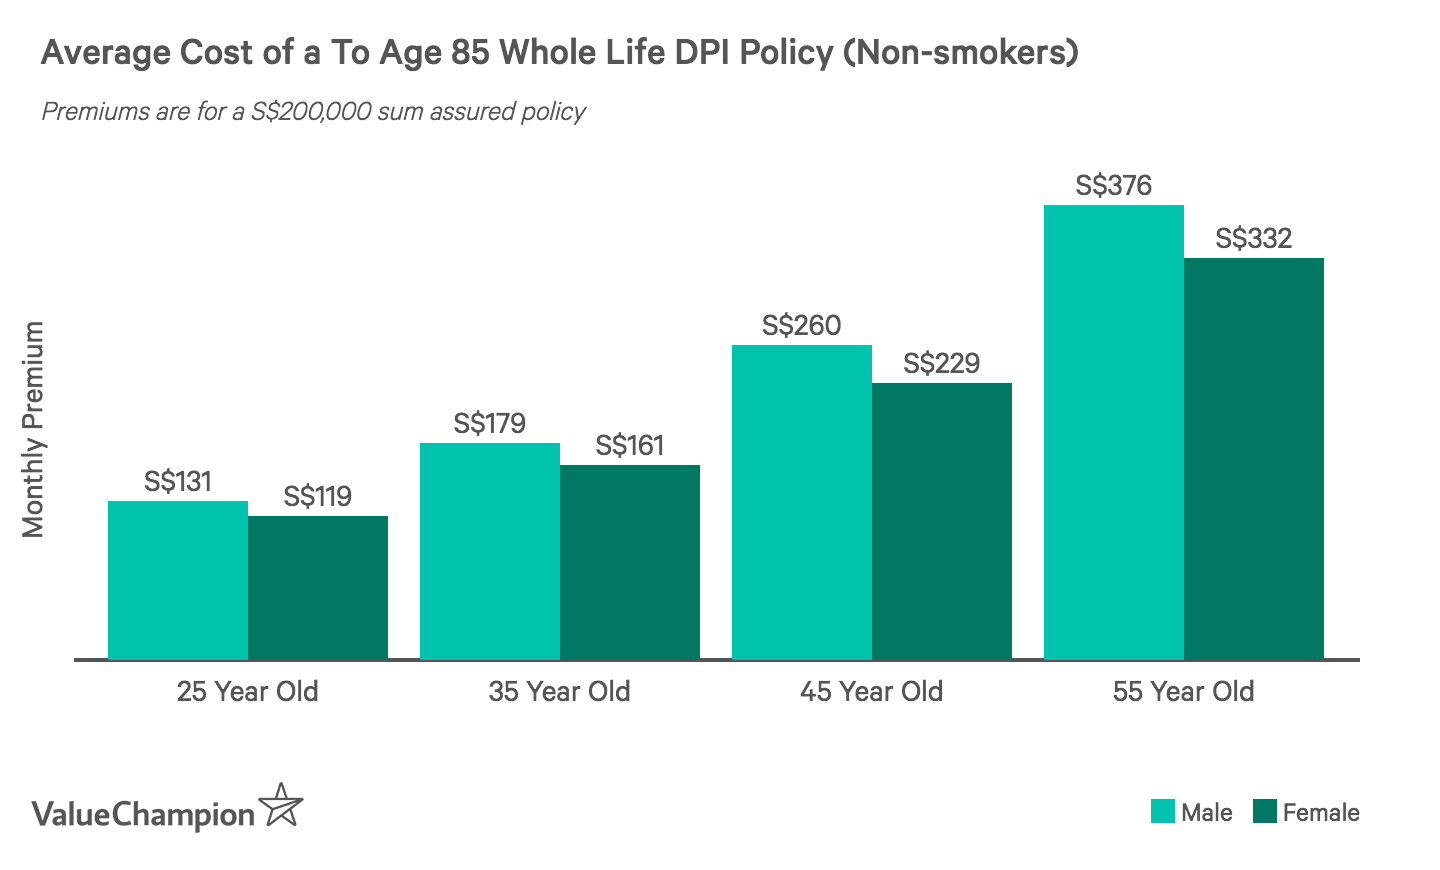 This graph shows the average cost of a S$200,000 up to age 85 whole life DPI plan for non-smoking men and women based on age